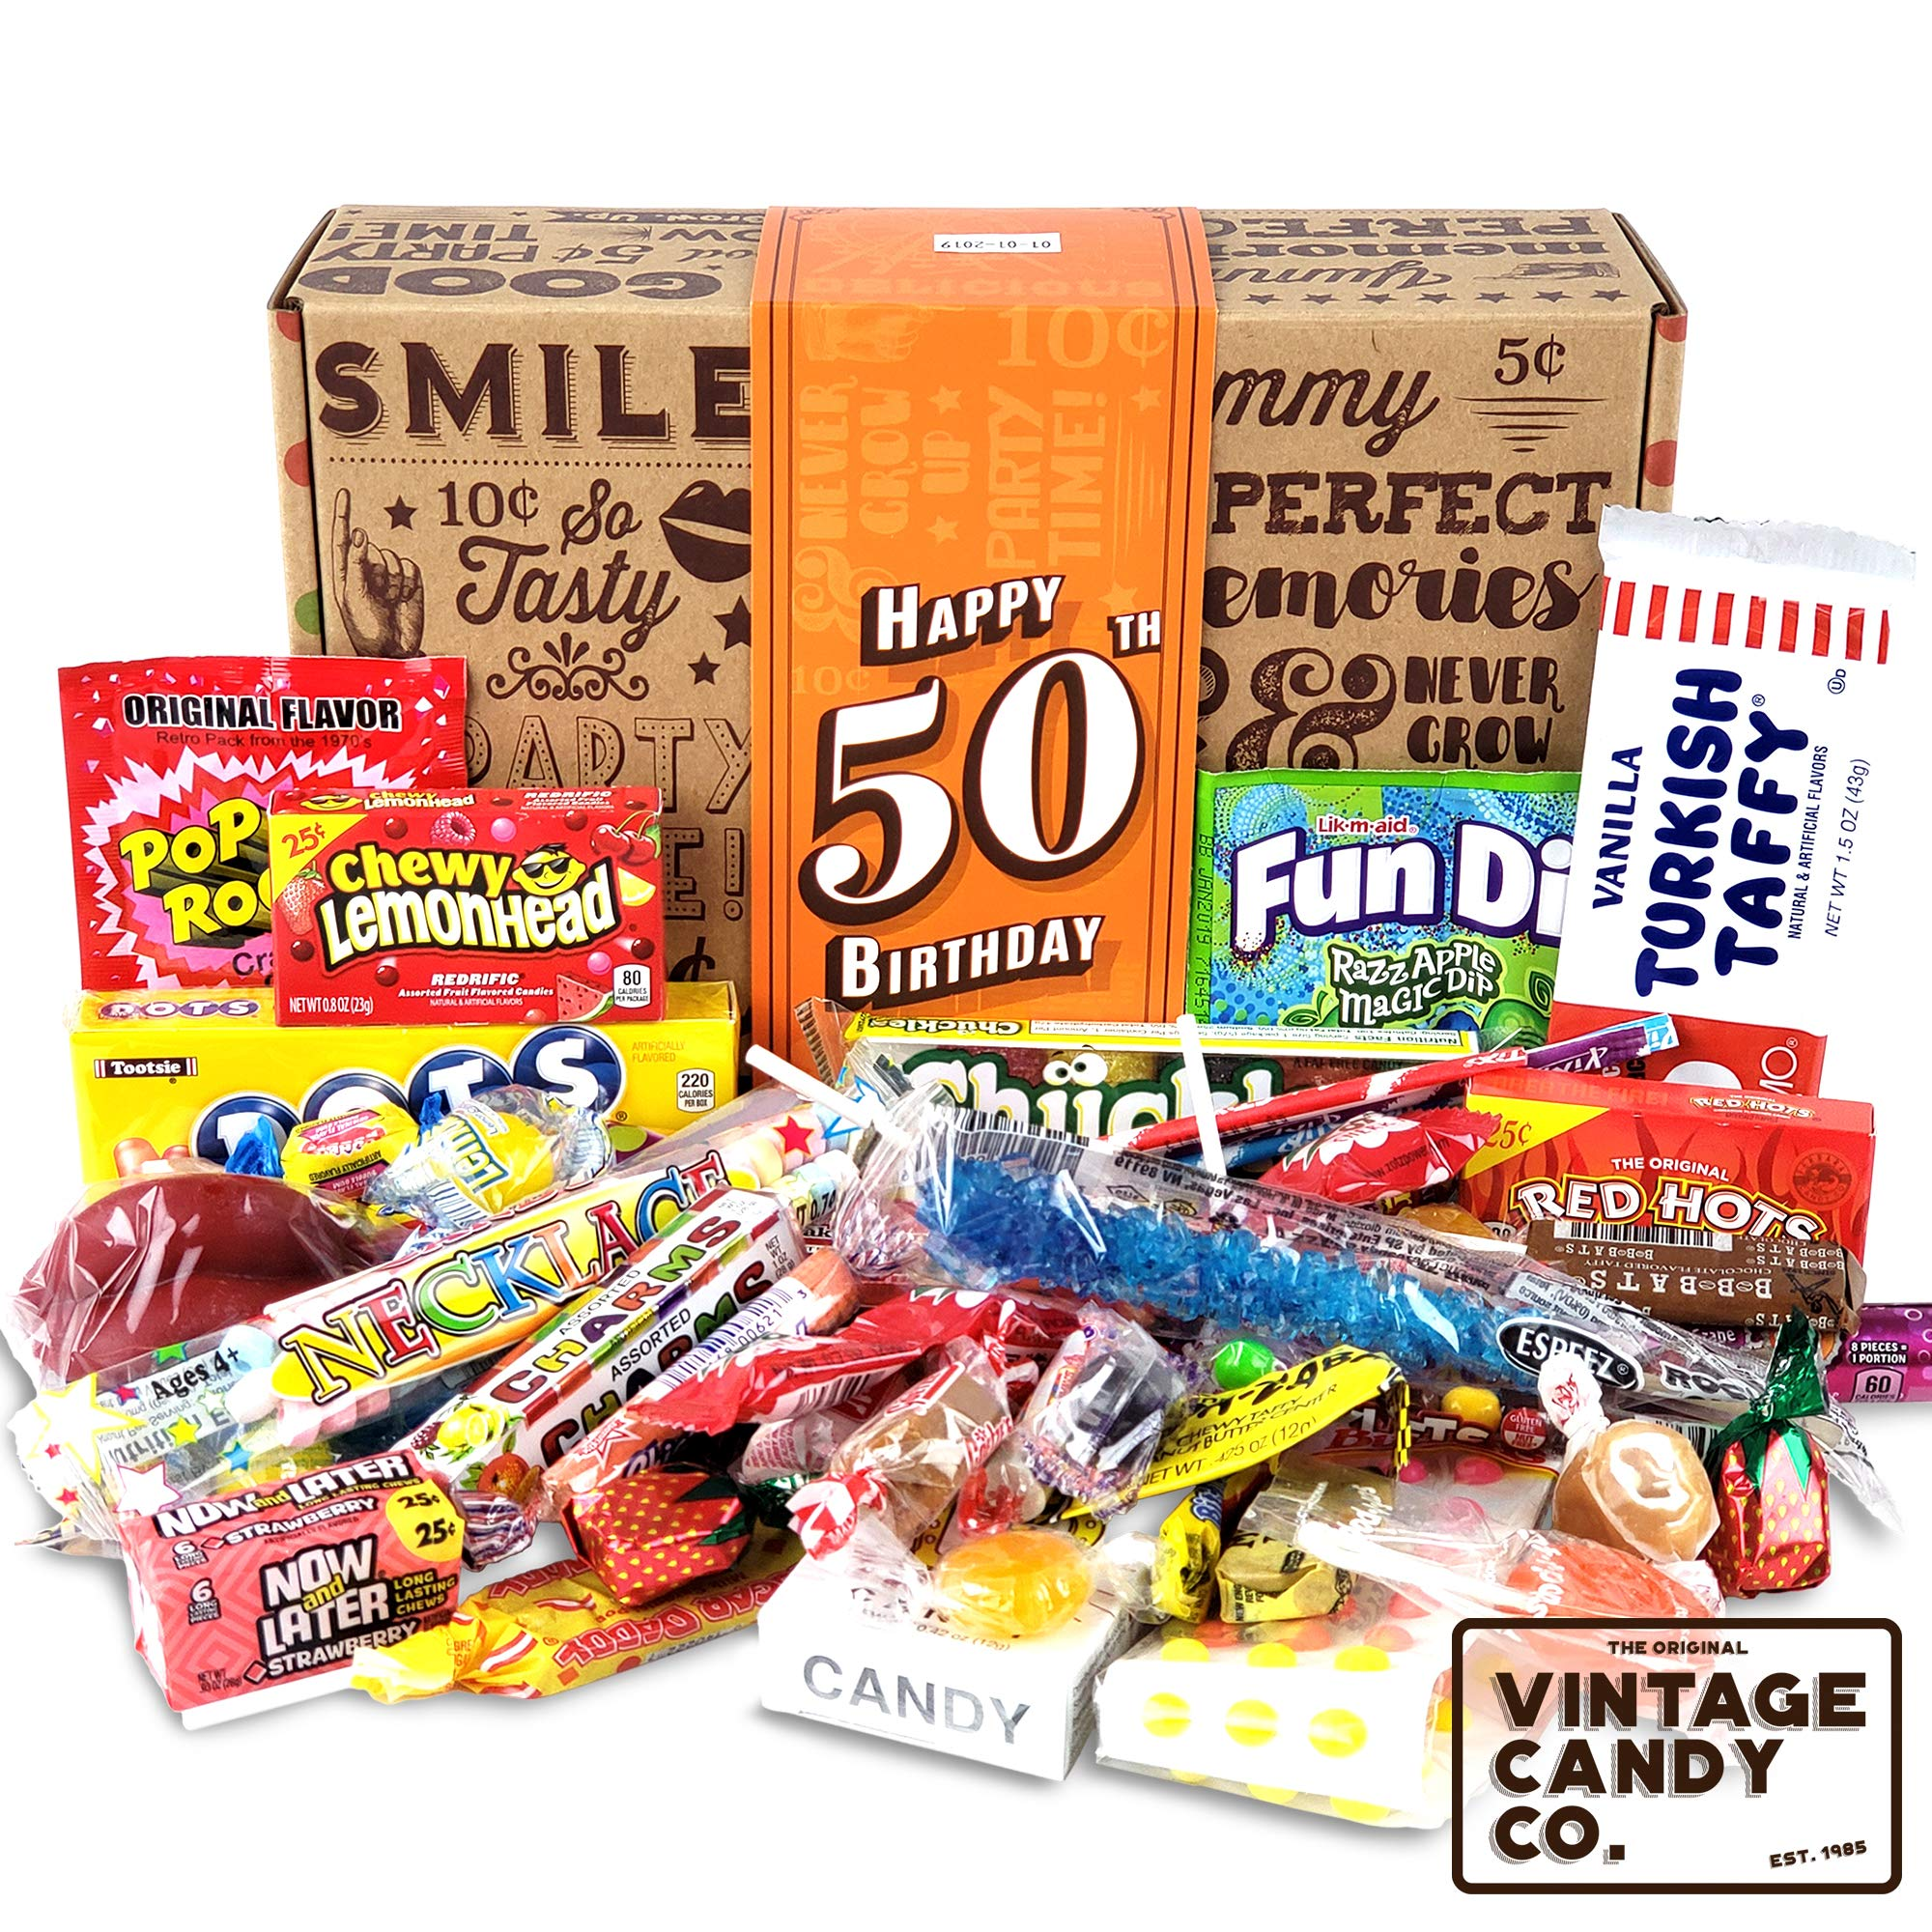 VINTAGE CANDY CO. 50TH BIRTHDAY RETRO CANDY GIFT BOX - 1969 Decade Nostalgic Childhood Candies - Fun Gag Gift Basket For Milestone FIFTIETH Birthday - PERFECT For Man Or Woman Turning 50 Years Old by Vintage Candy Co.